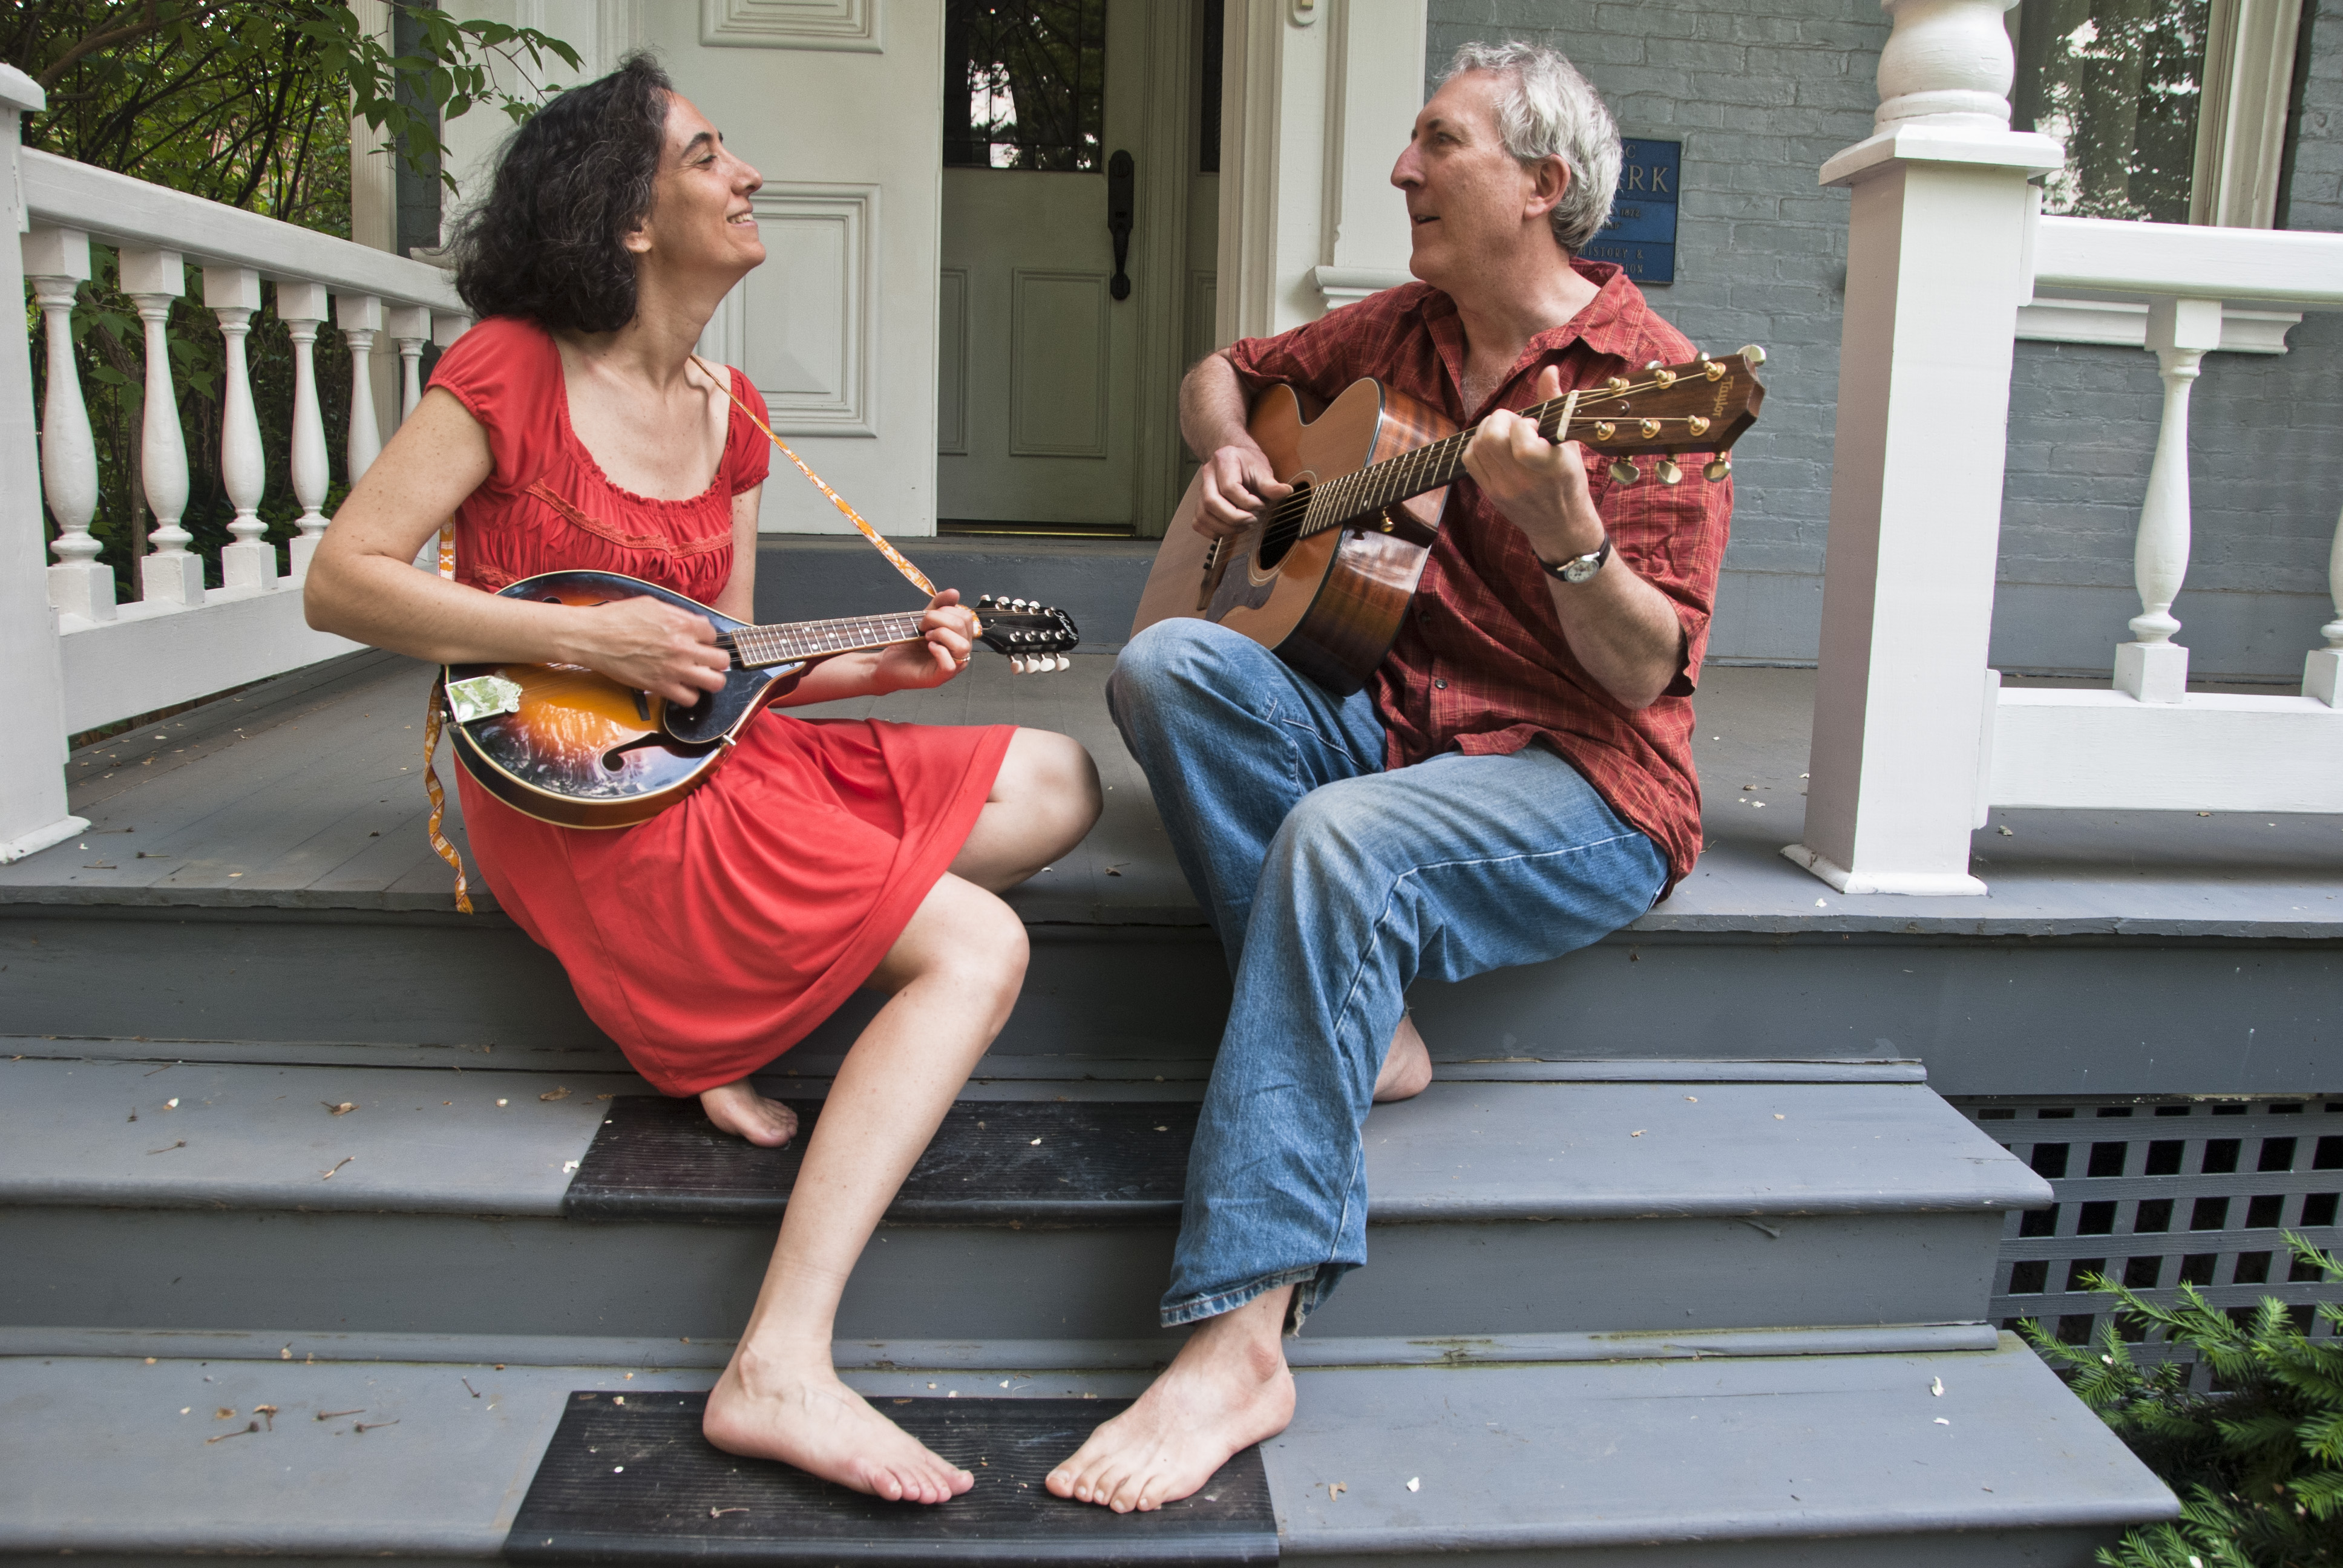 musicians sitting on the porch steps